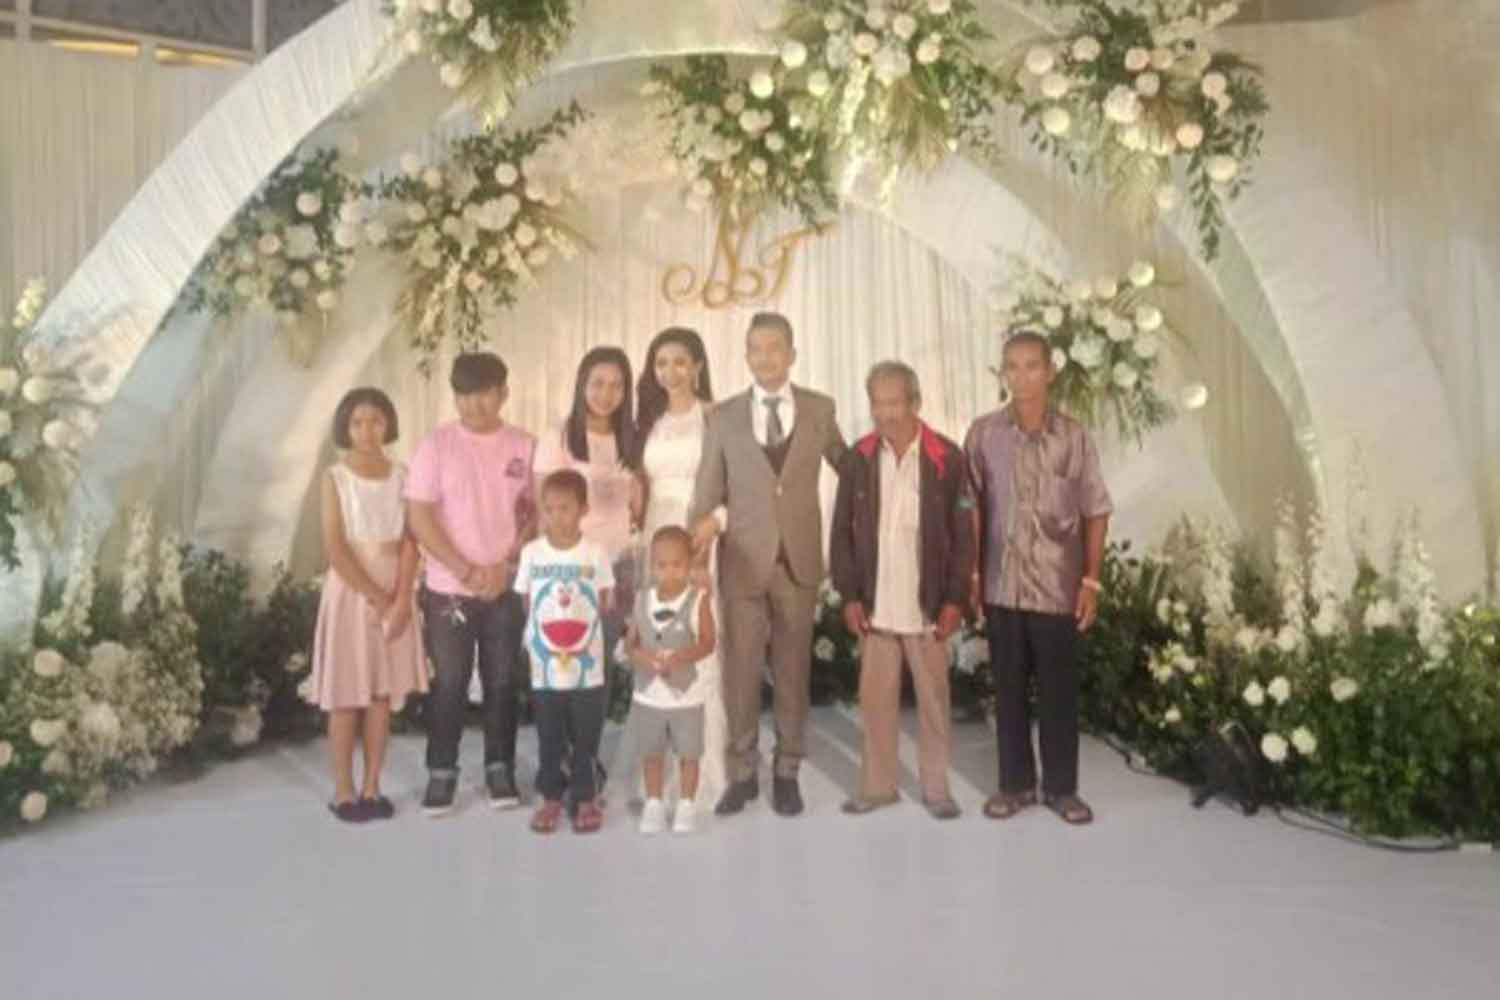 Family members pose for photos with the wedding couple at Alvarez Hotel in Muang district of Buri Ram in May. (Photo supplied)